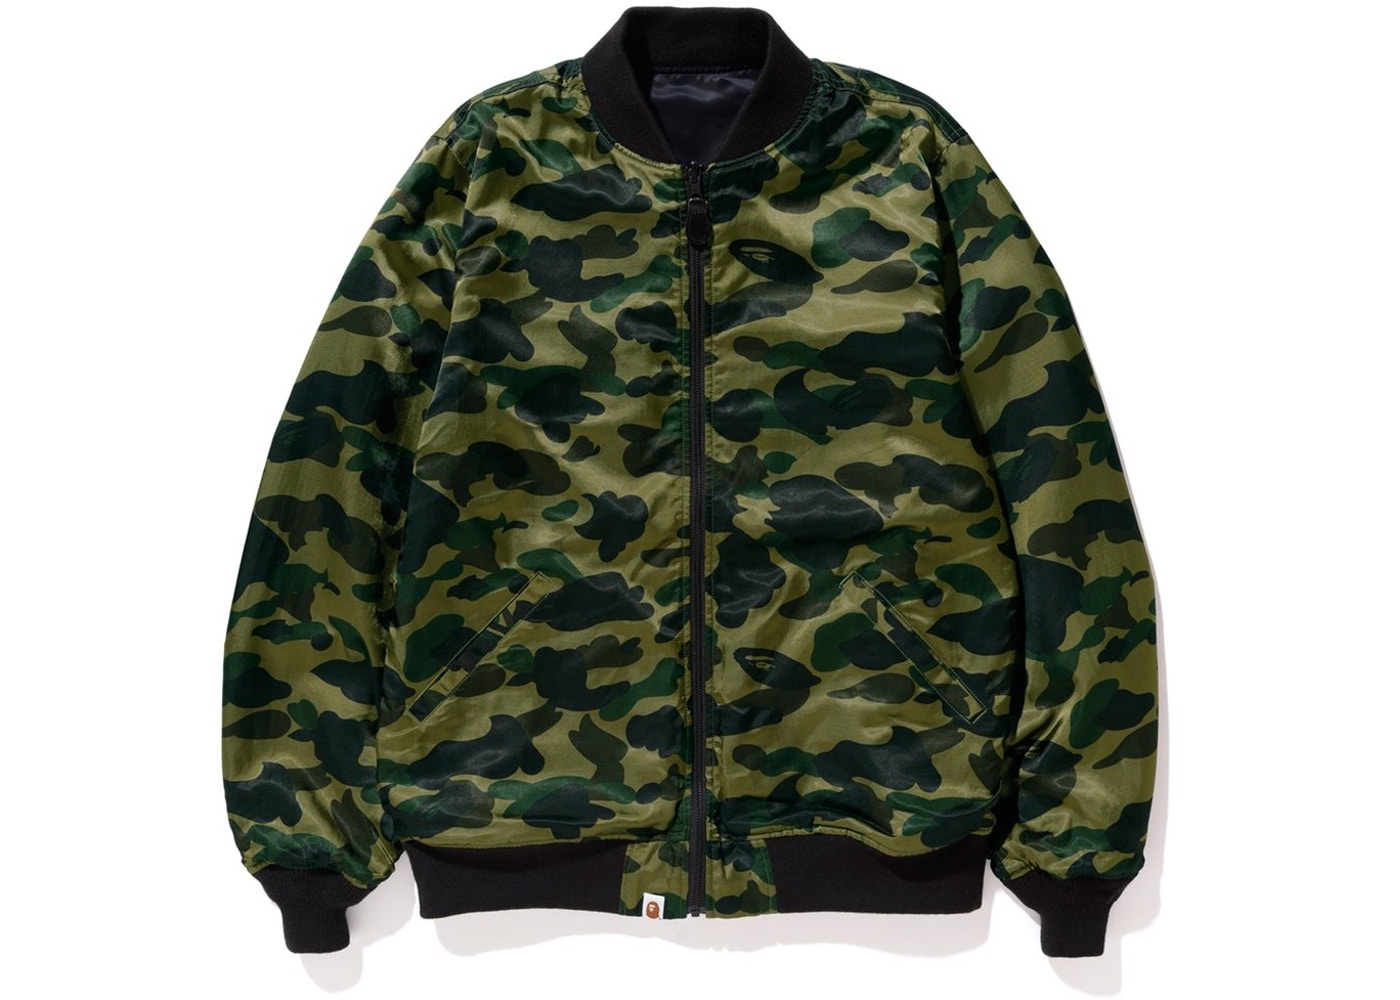 a54a6073f30d Streetwear - Bape Jackets - New Highest Bids